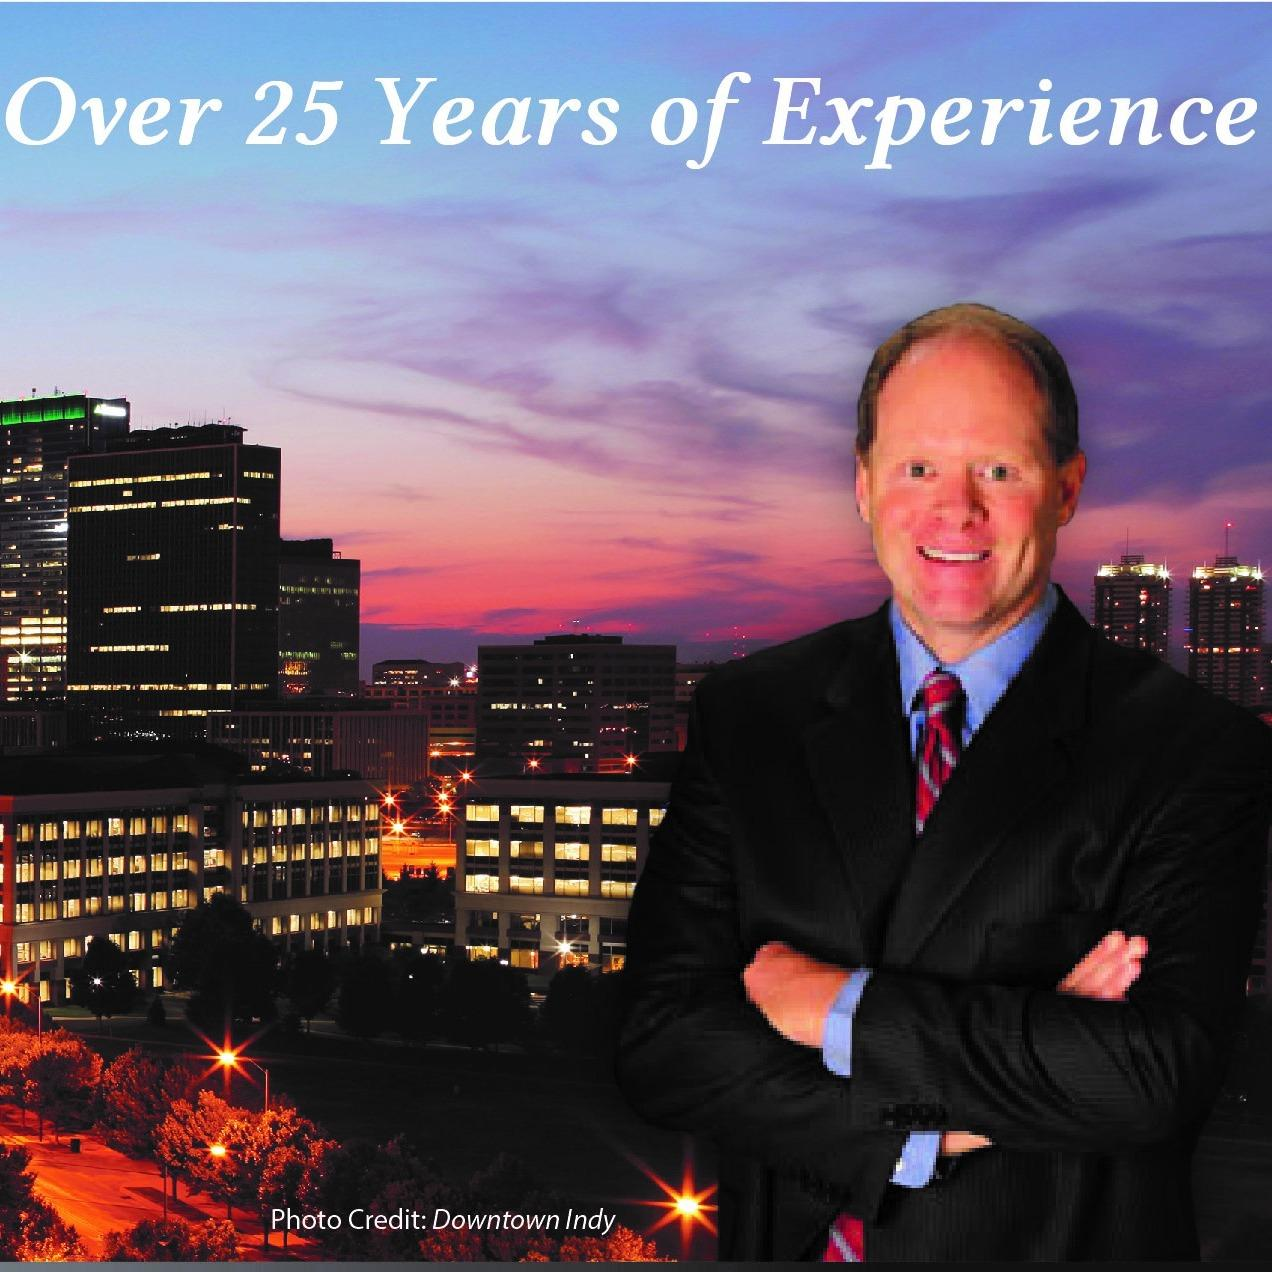 Steven E. Willsey, Attorney at Law